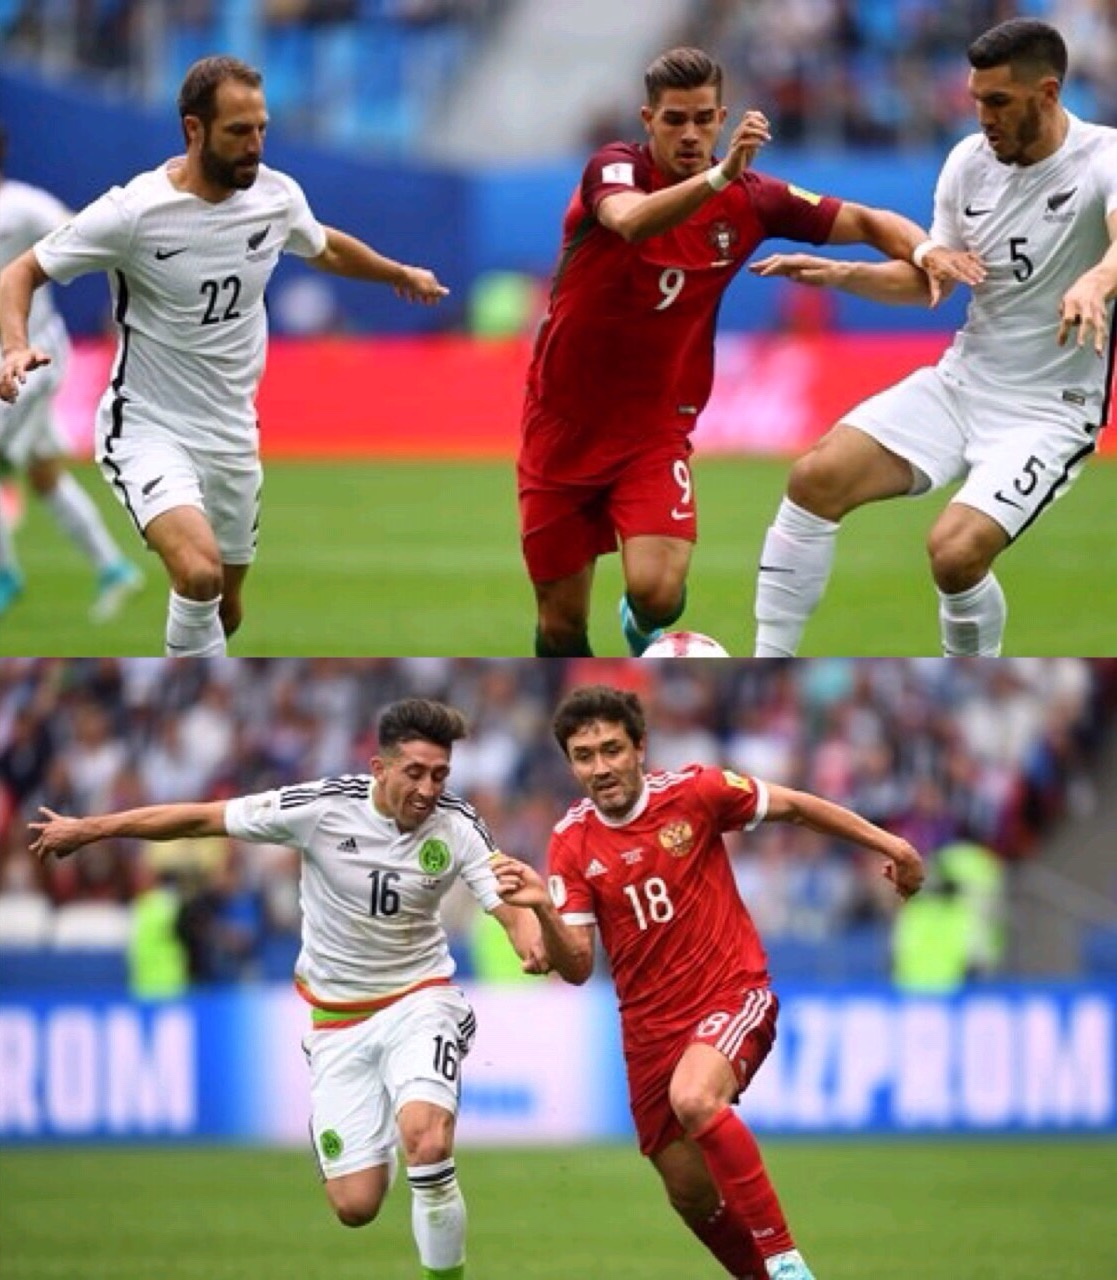 Confed Cup: Portugal, Mexico Win, Zoom Into Semis; Hosts Russia, New Zealand Crash Out